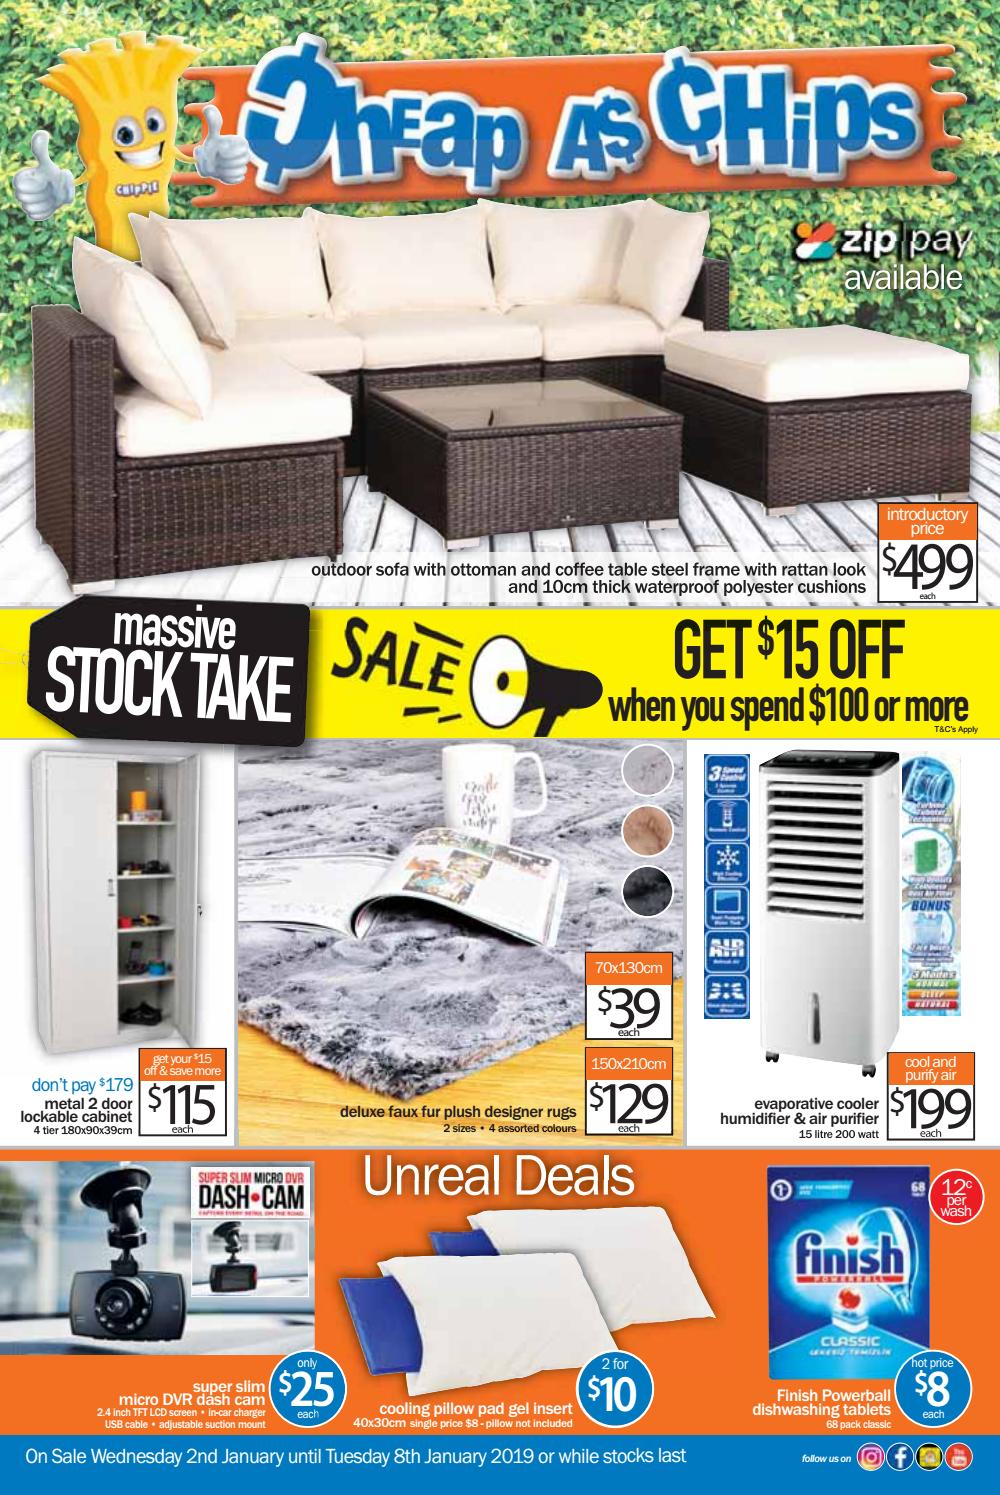 January 2nd 8 Page Catalogue 2019 By Cheap As Chips Issuu